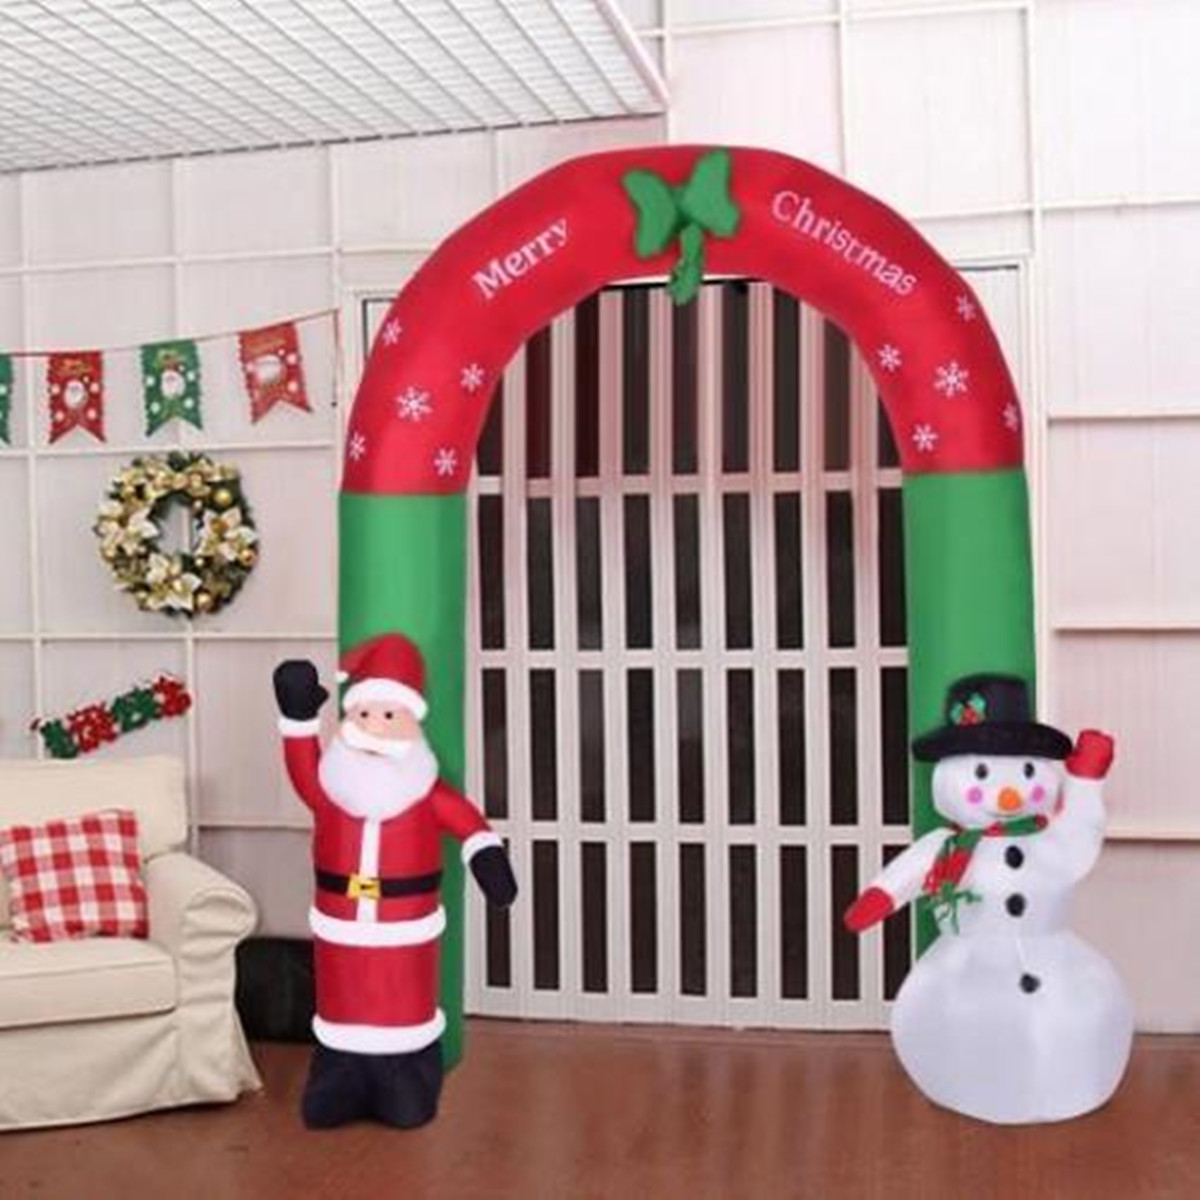 2 4m Inflatable Christmas Arch Santa Snowman Indoor Outdoor Decor Decorations